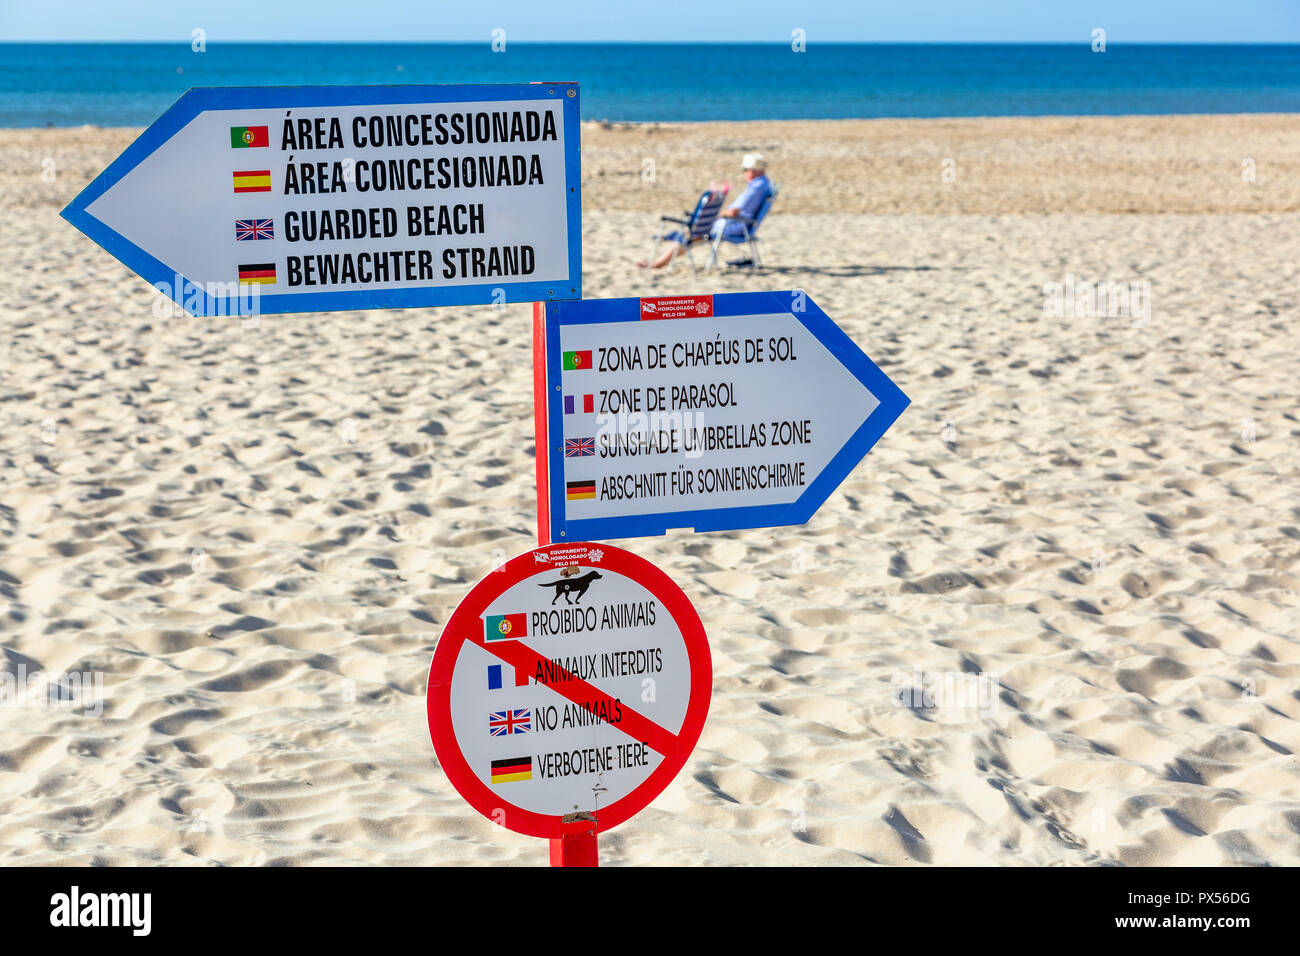 Information and warning sign on the beach at Monte Gordo, Algarve, Portugal - Stock Image